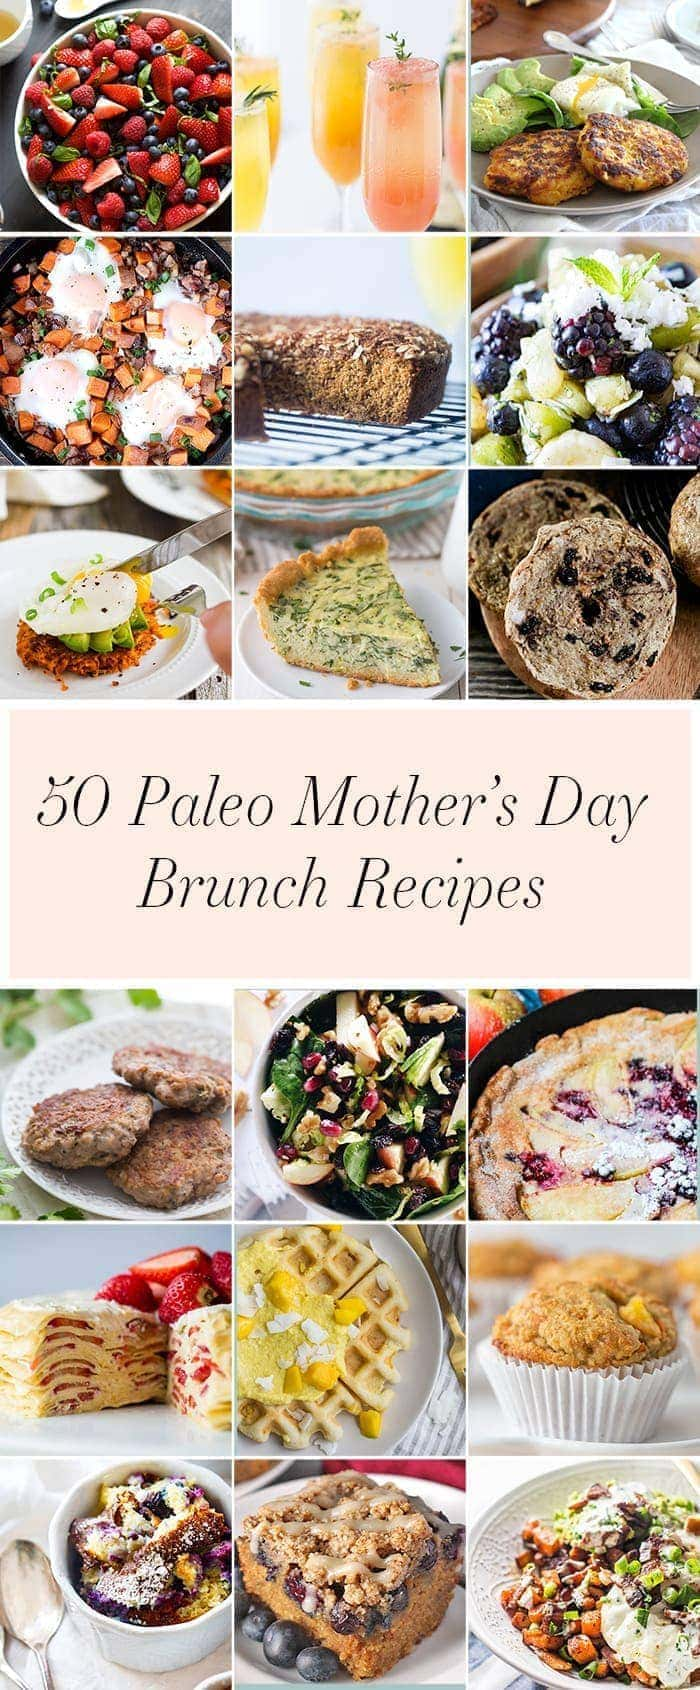 50 paleo mother 39 s day brunch recipes 40 aprons. Black Bedroom Furniture Sets. Home Design Ideas